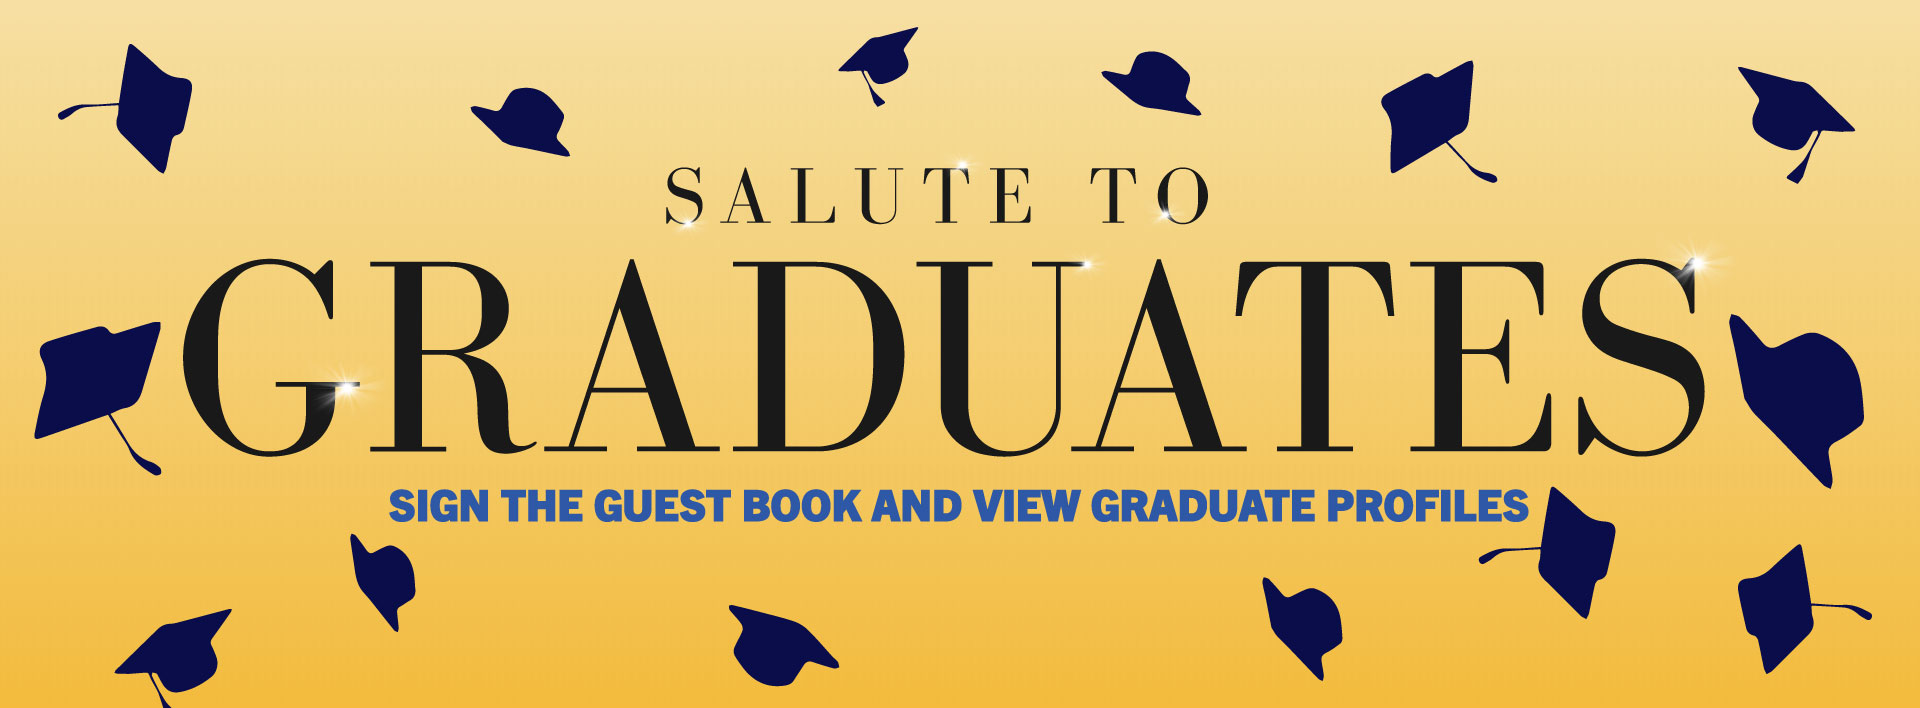 Sign the Salute to Graduates Guest Book and View Graduate Profiles